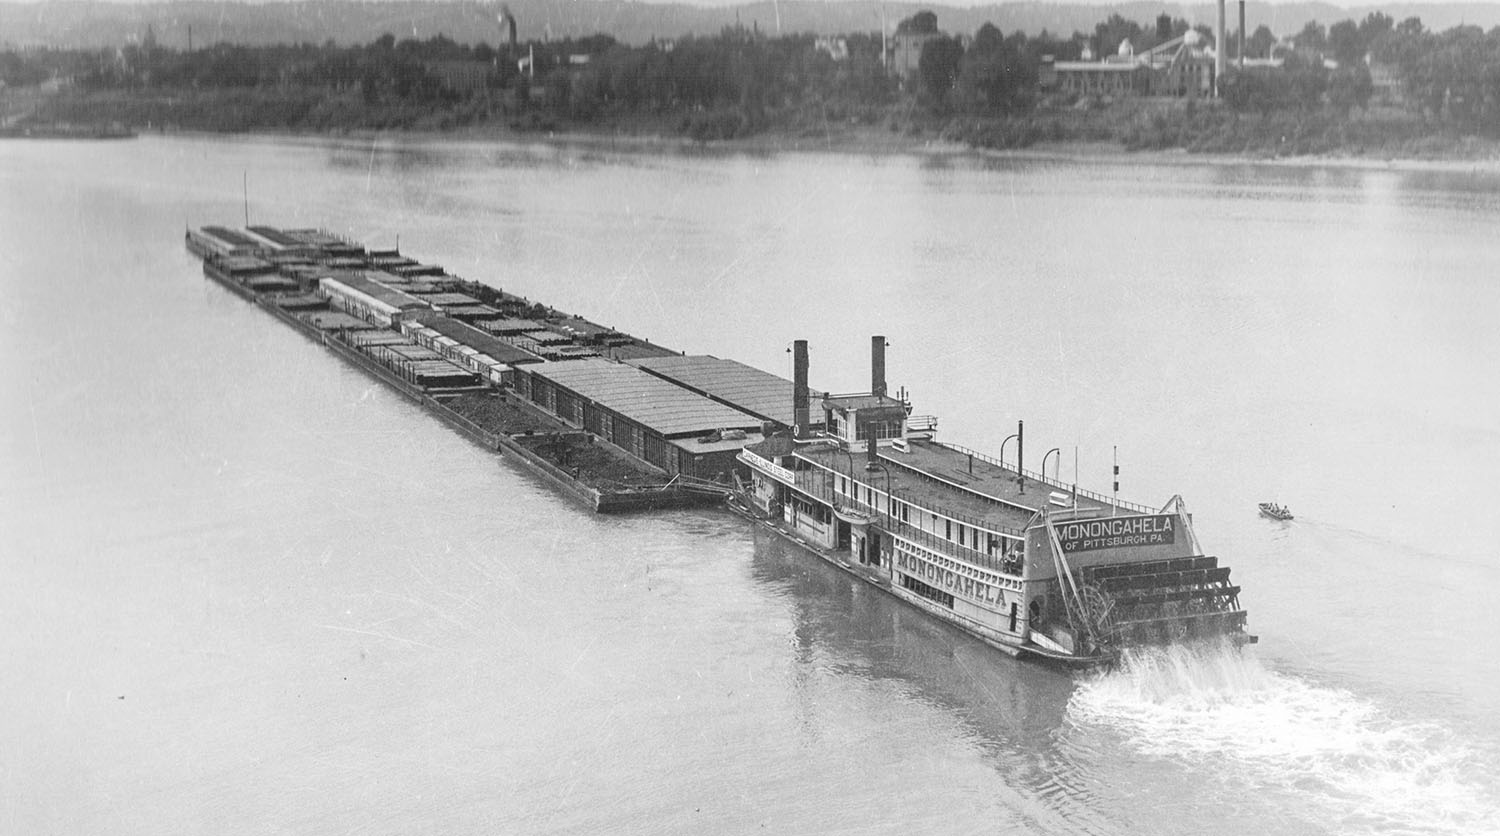 The Towboat Monongahela